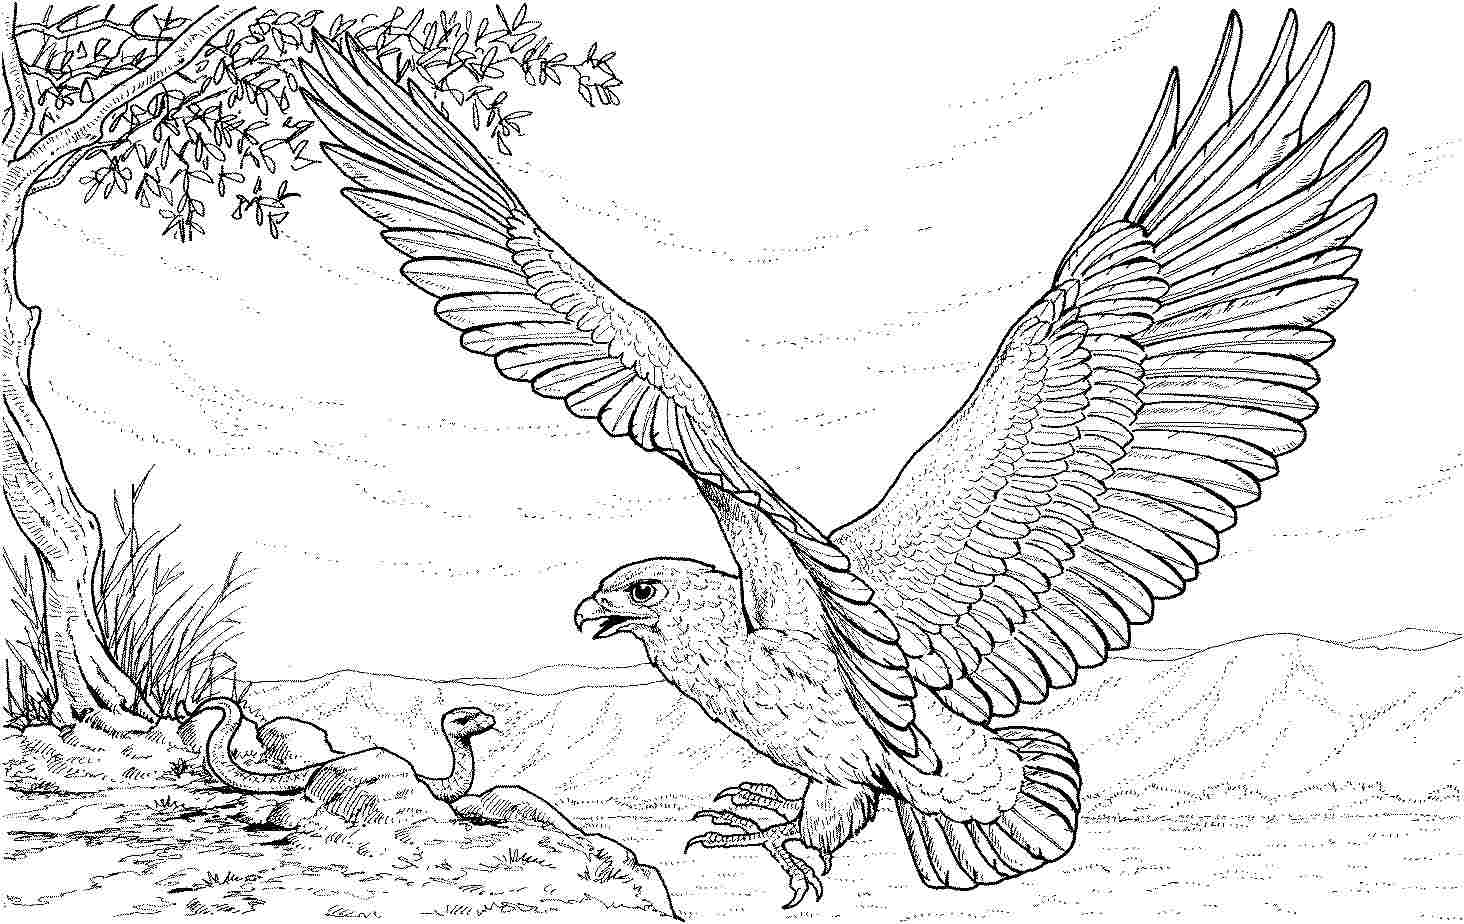 coloring pages eagle eagle coloring pages to download and print for free coloring eagle pages